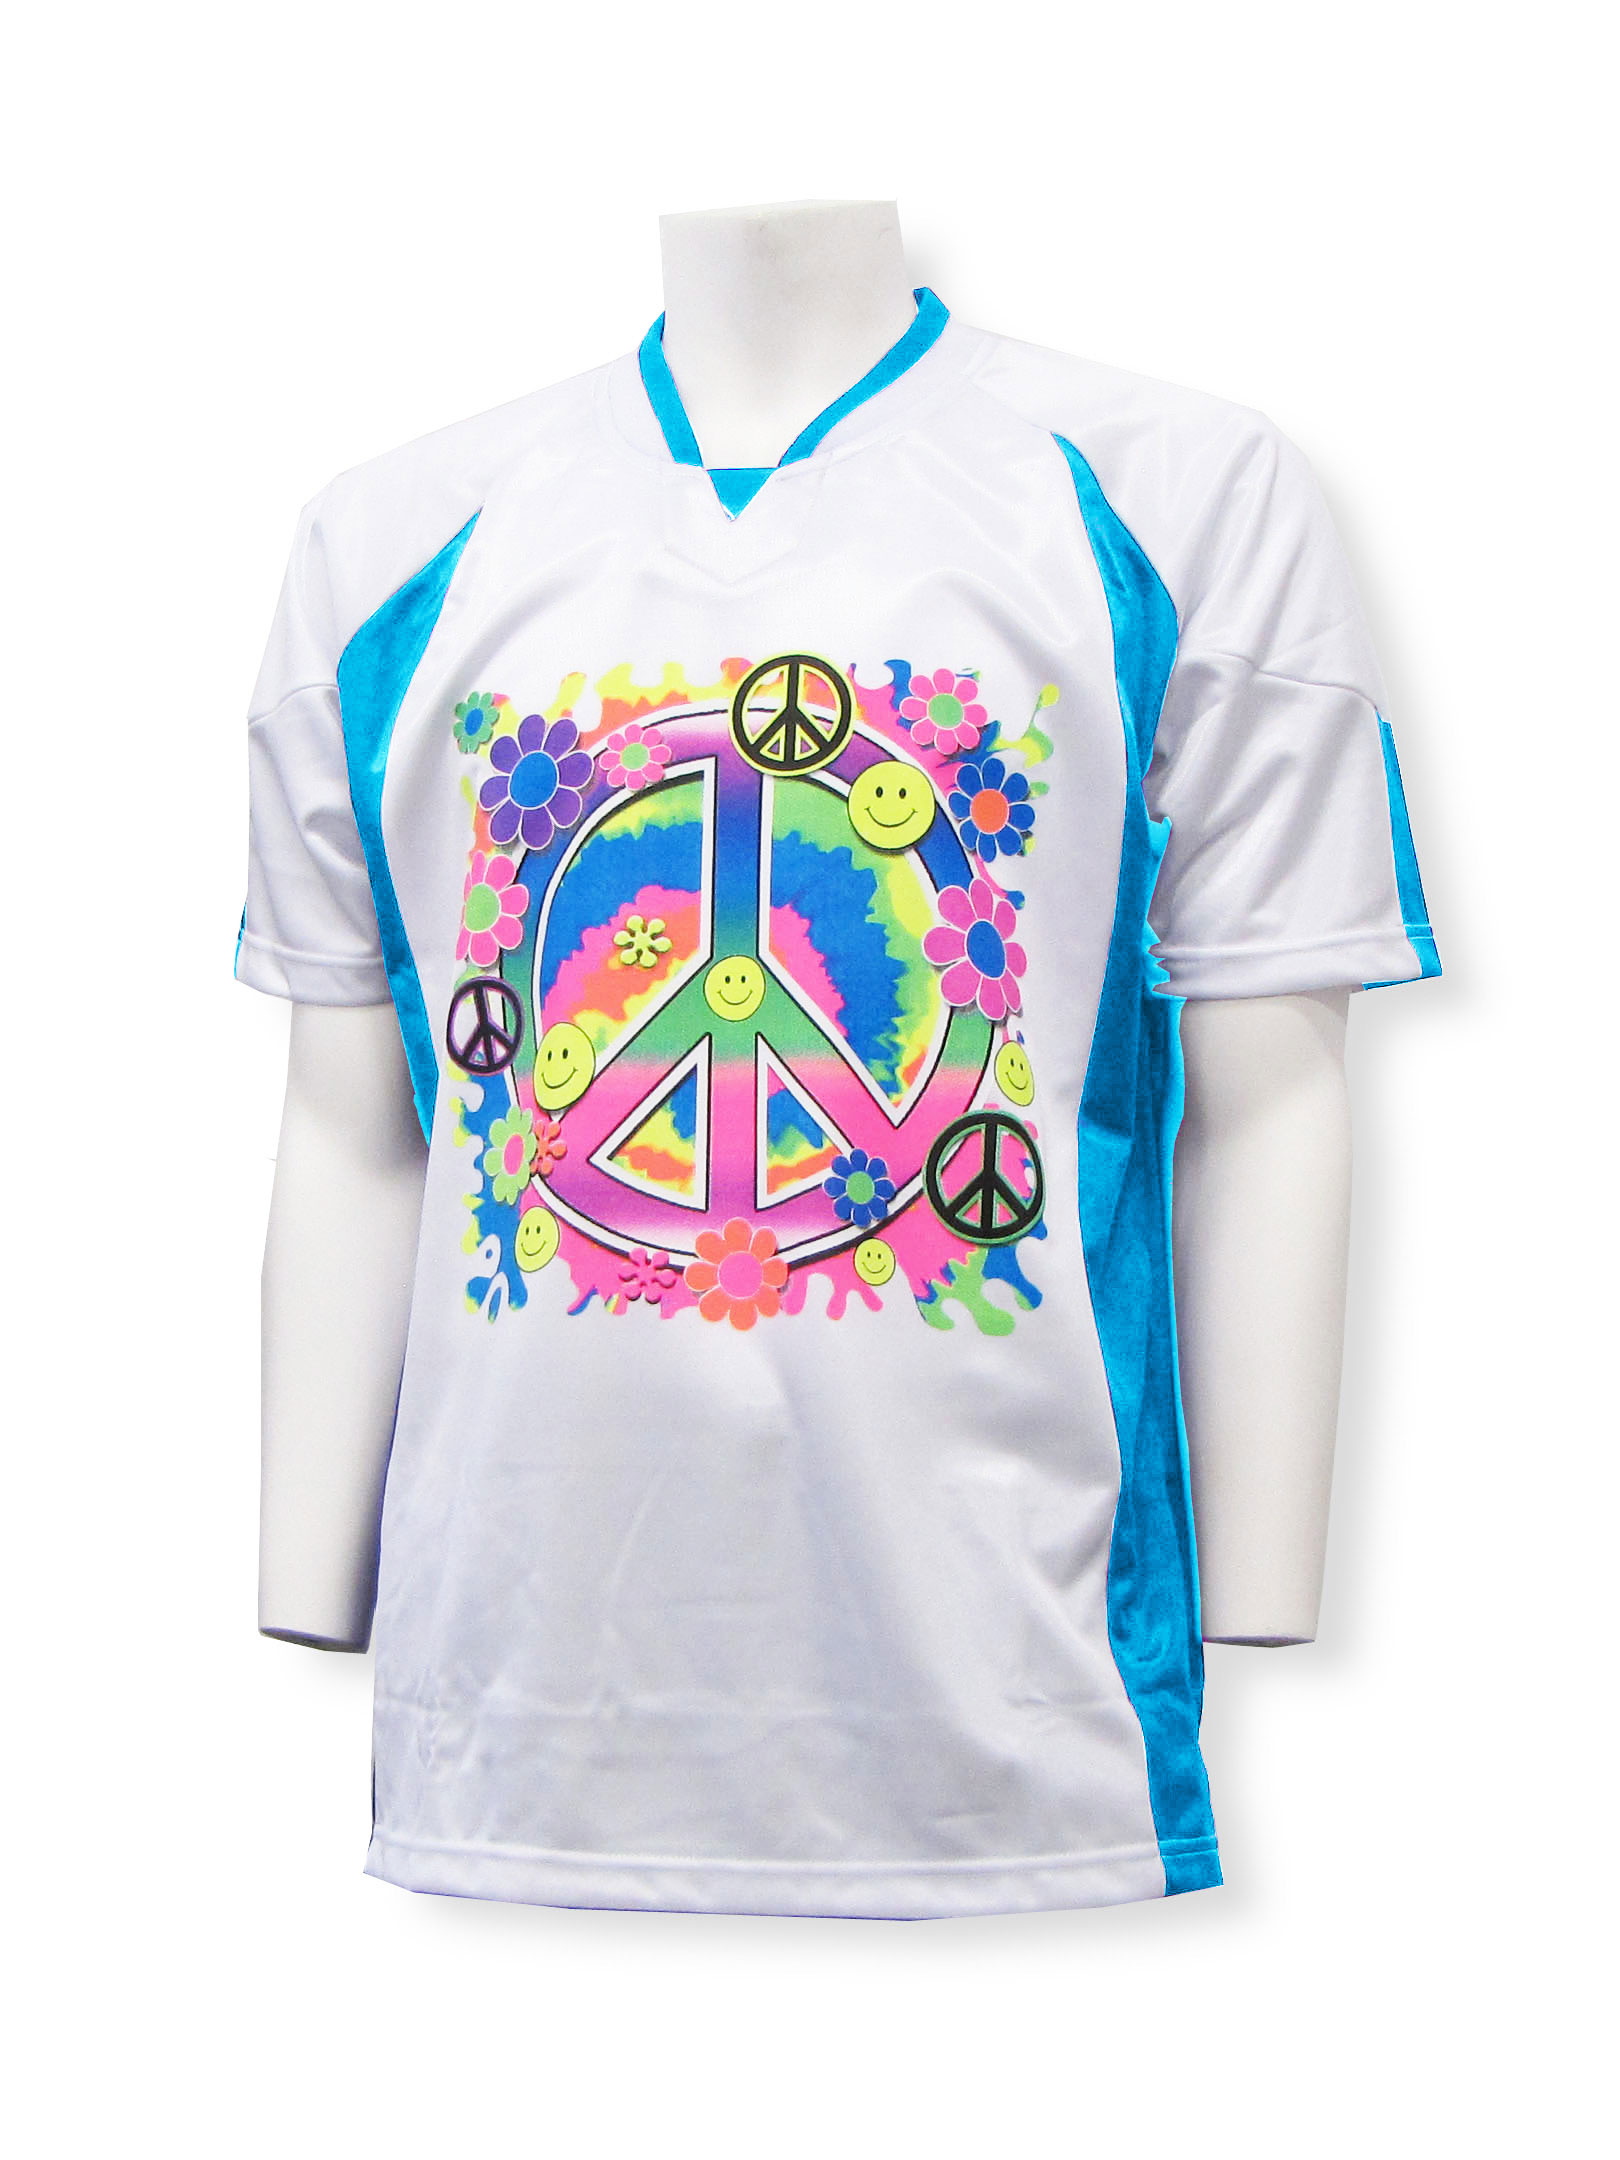 PeaceKeeper goalie jersey in white/sky blue by Code Four Athletics